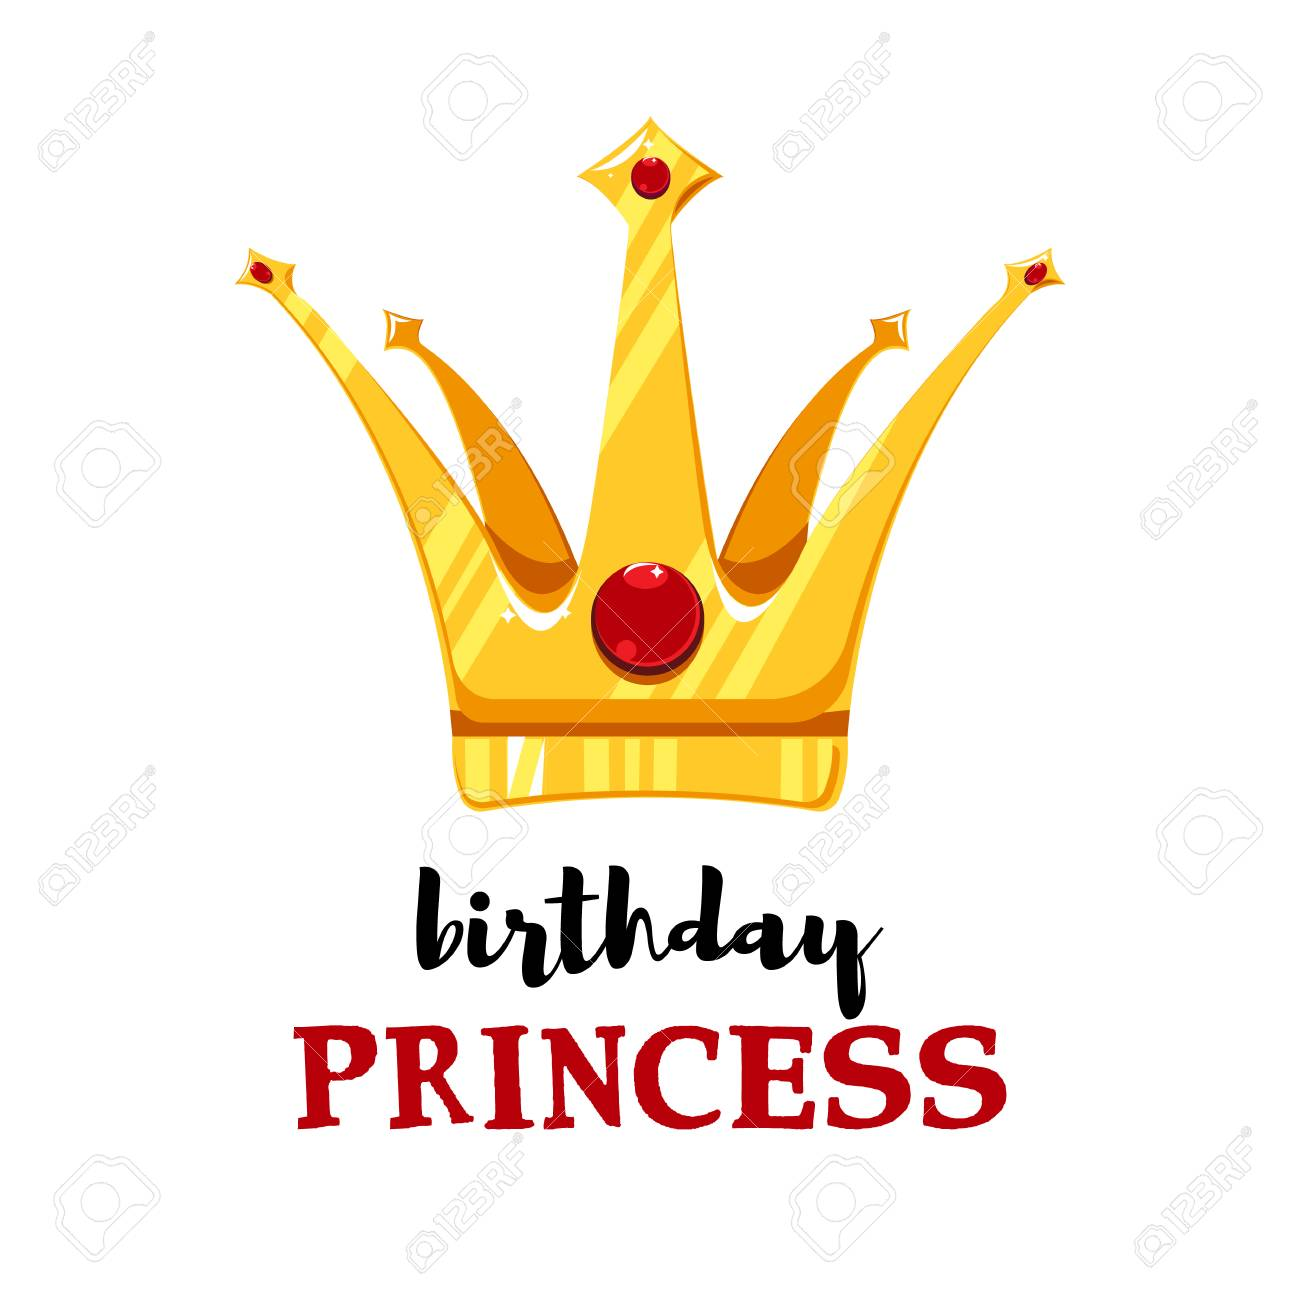 Vector Illustration Birthday Card With Cartoon Crown With Red Royalty Free Cliparts Vectors And Stock Illustration Image 126719071 Aria's briefing on what he could and couldn't do (much more of the. vector illustration birthday card with cartoon crown with red